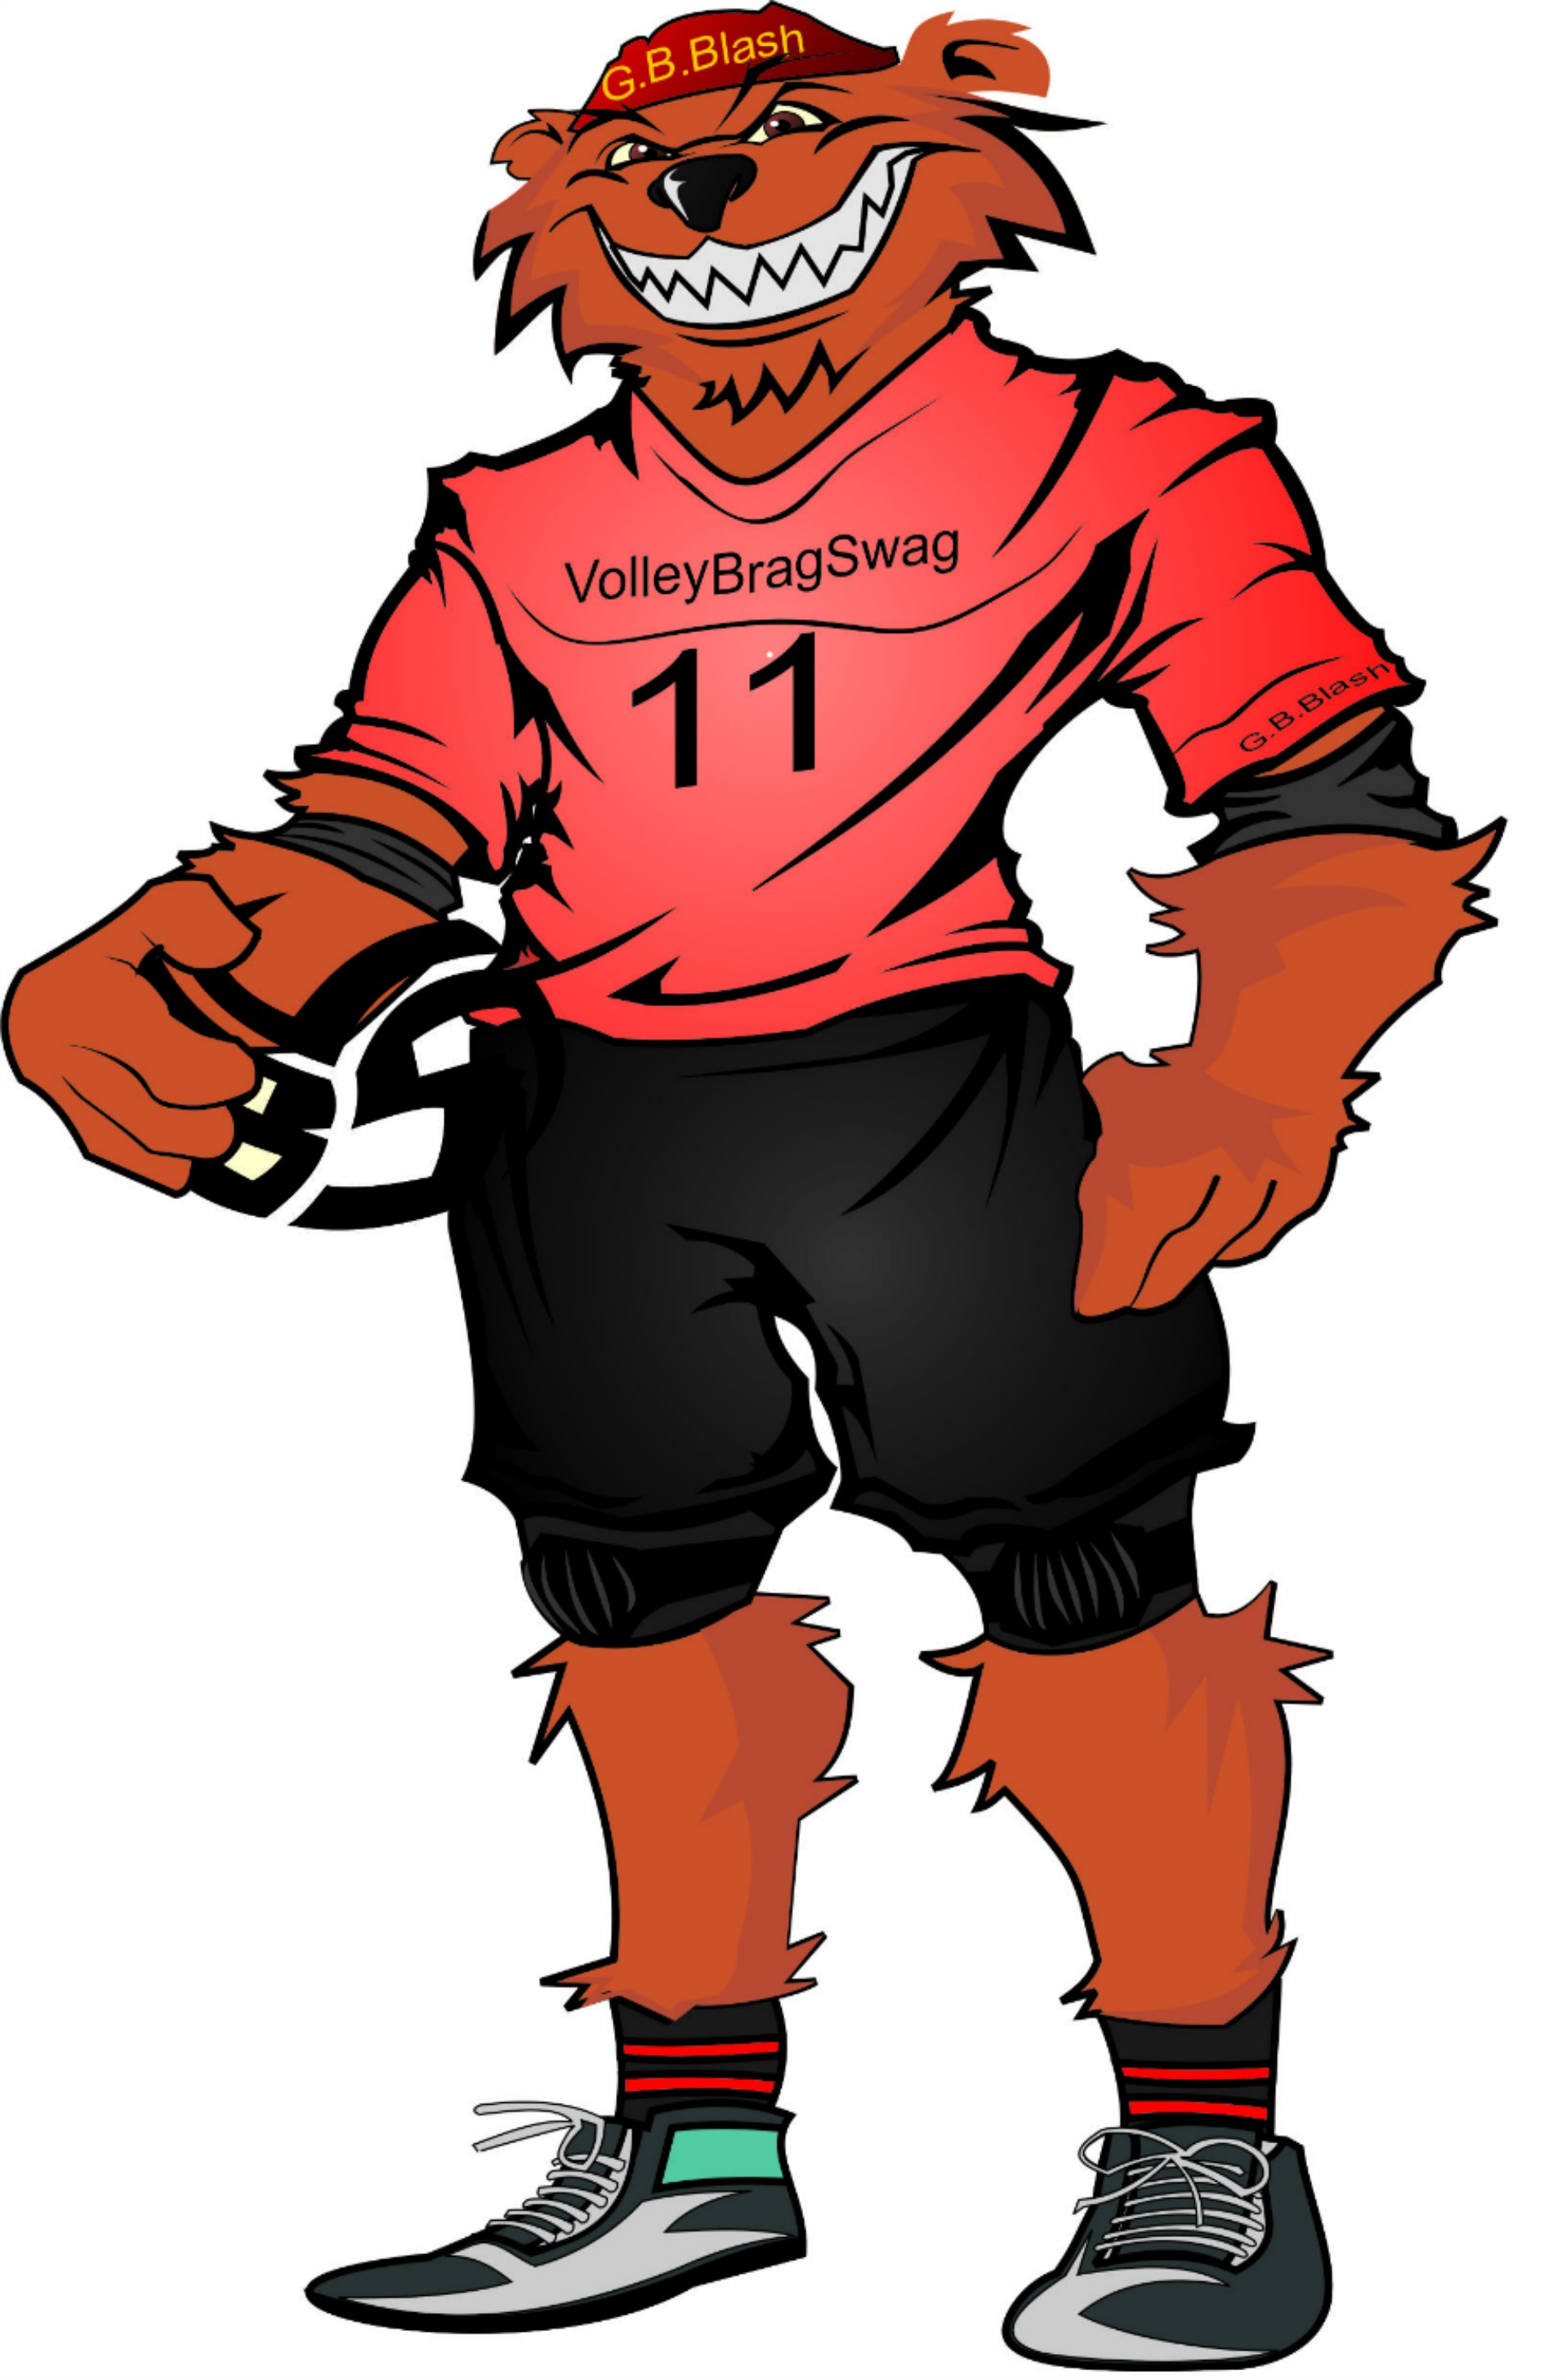 Meet G.B. Blash the Volleybragswag Grizzly Bear and middle blocker.